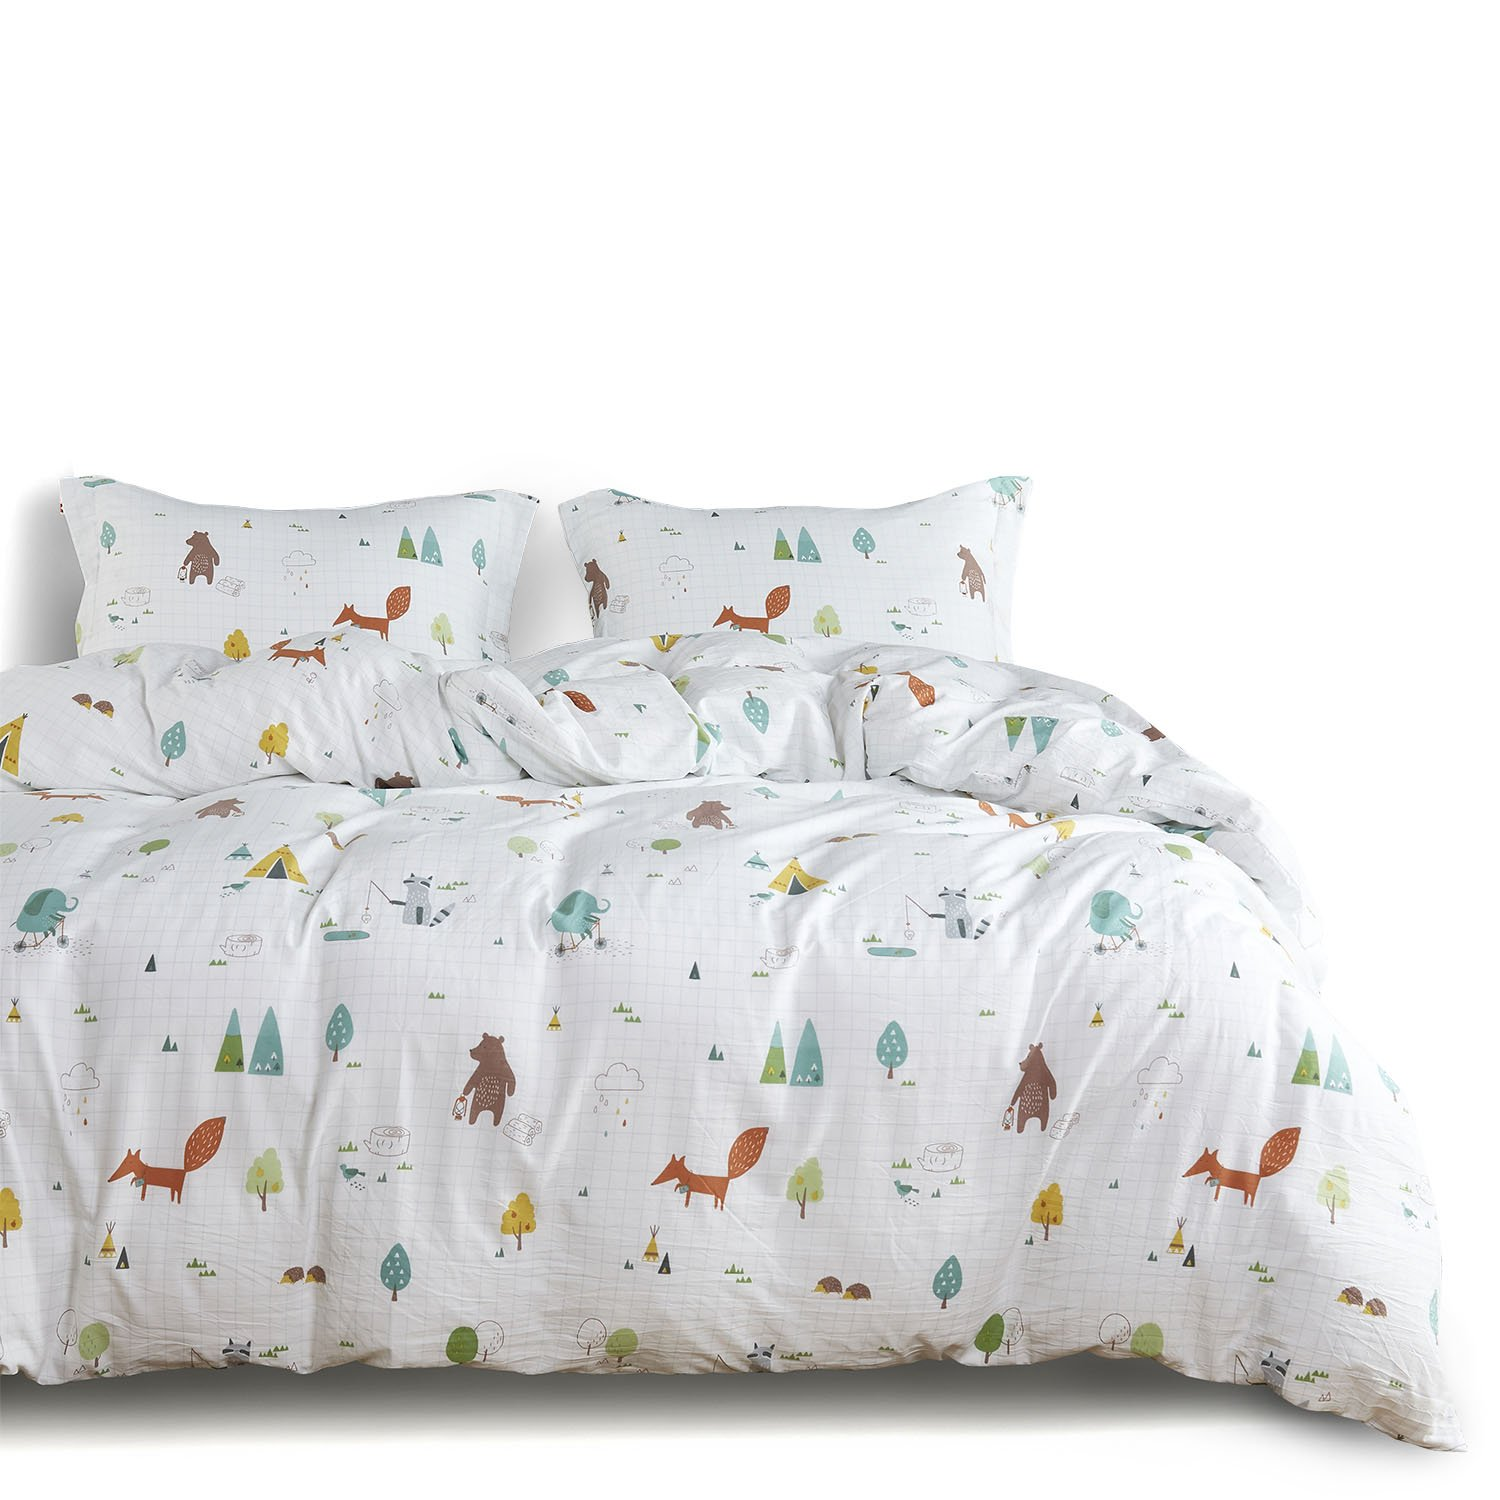 Wake In Cloud - Zoo Comforter Set Queen, 3-Piece Fox Elephant Bear Animals Cartoon Pattern Printed, Soft Washed Microfiber Bedding for Kids or Teens (3pcs, Queen Size) by Wake In Cloud (Image #1)